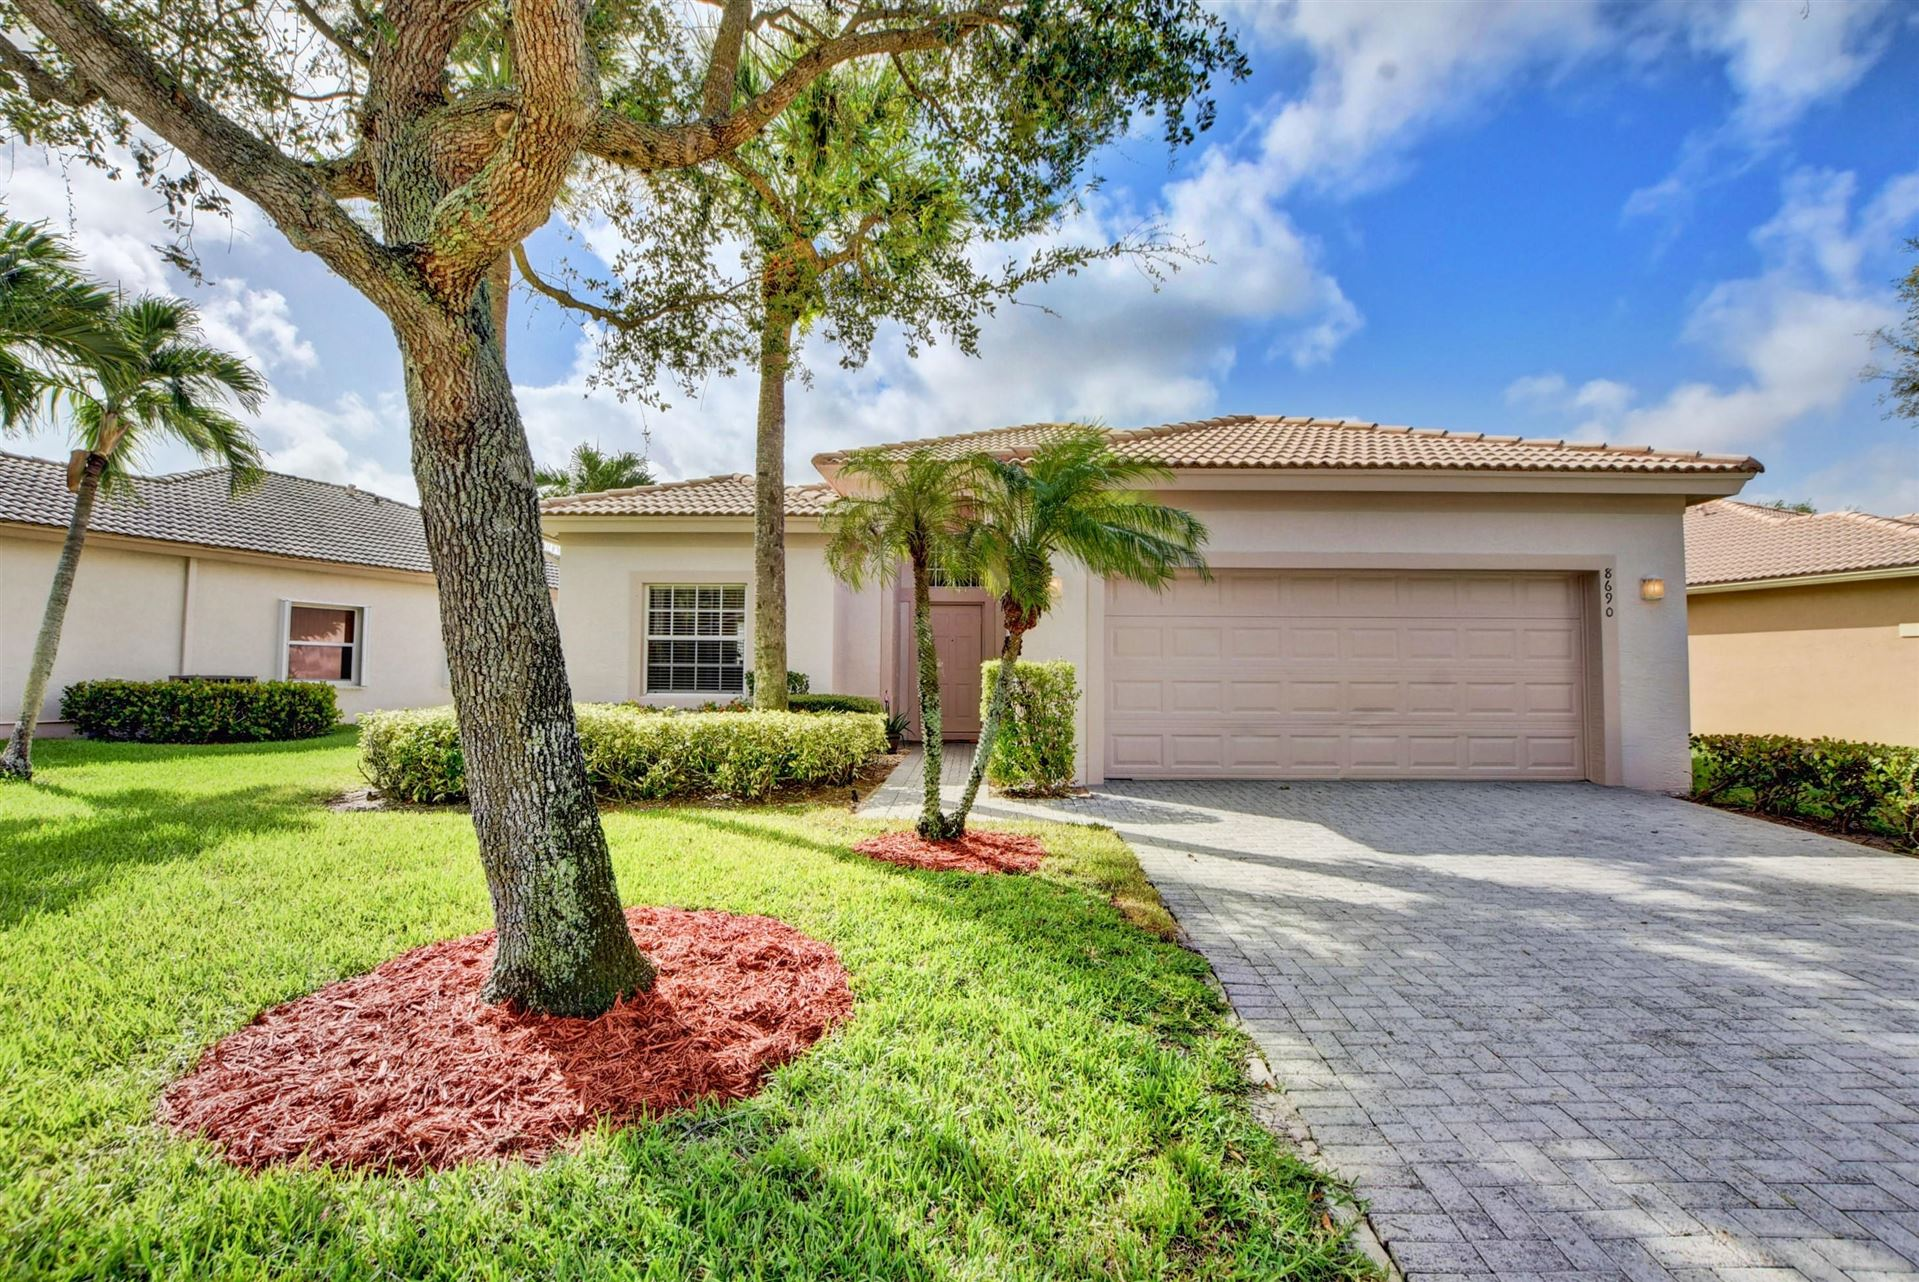 8690 Pine Cay, West Palm Beach, FL 33411 - #: RX-10644826